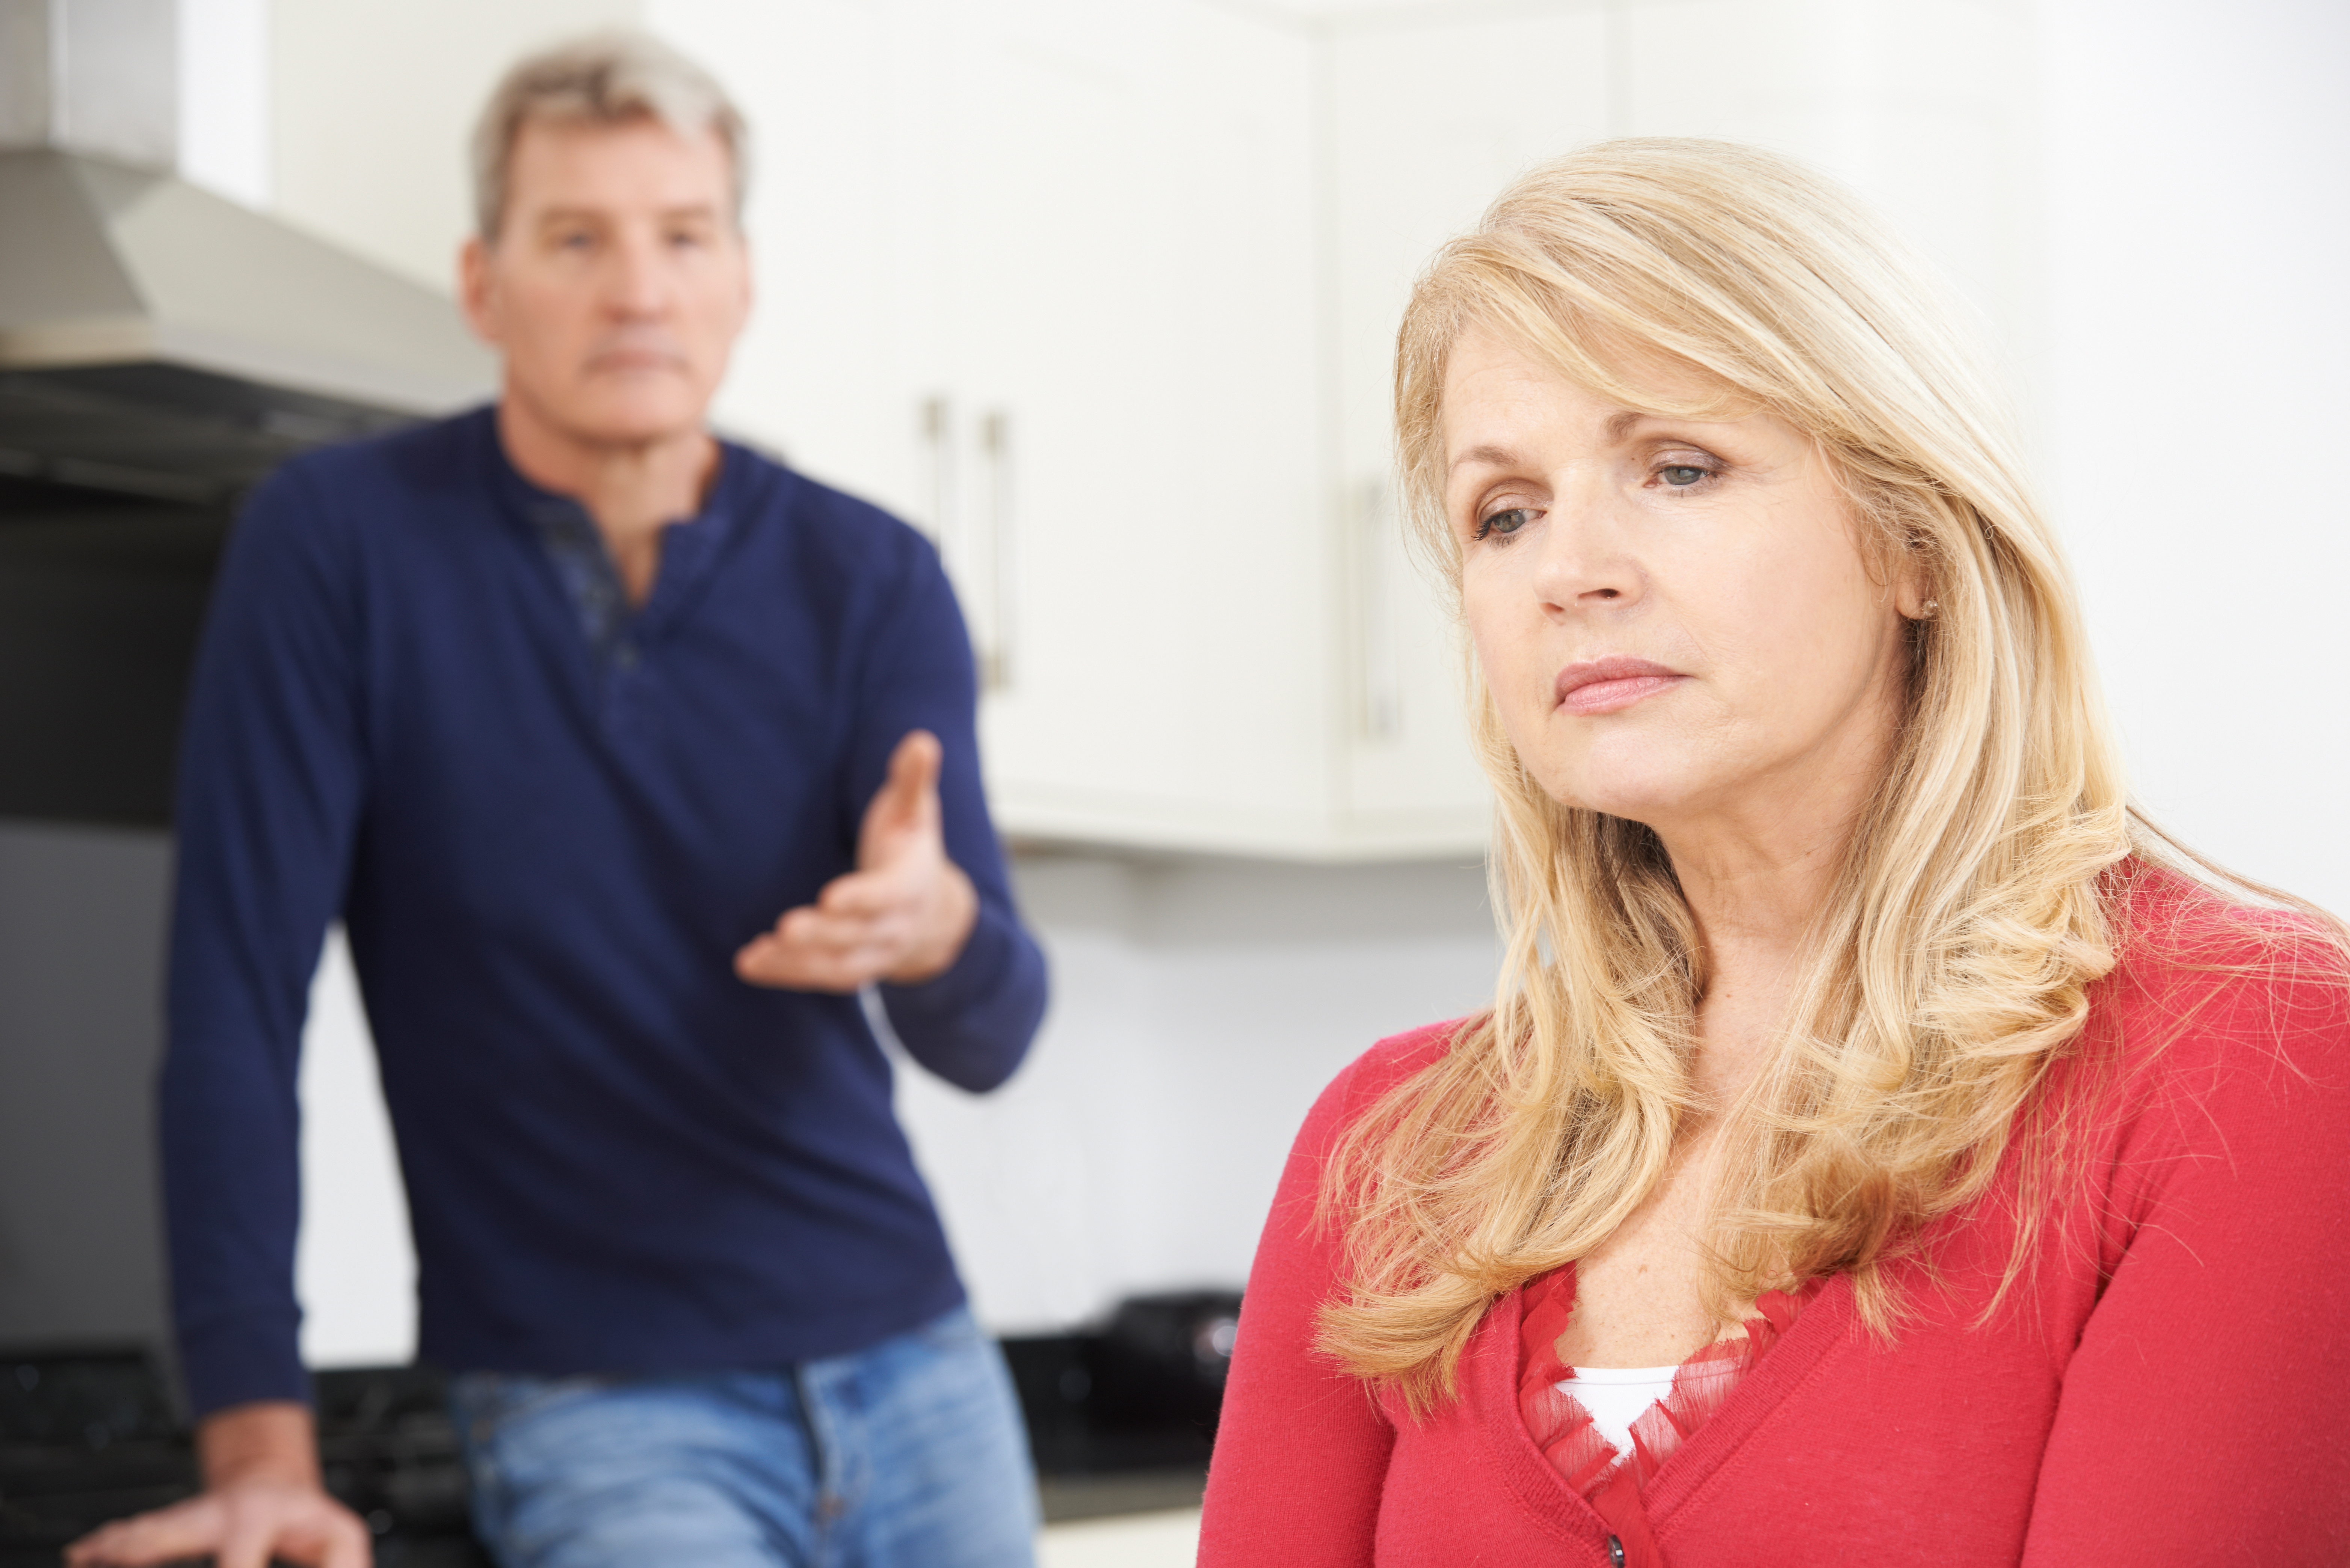 Divorce Advice: Guess What? Your Ex and His New Wife Aren't